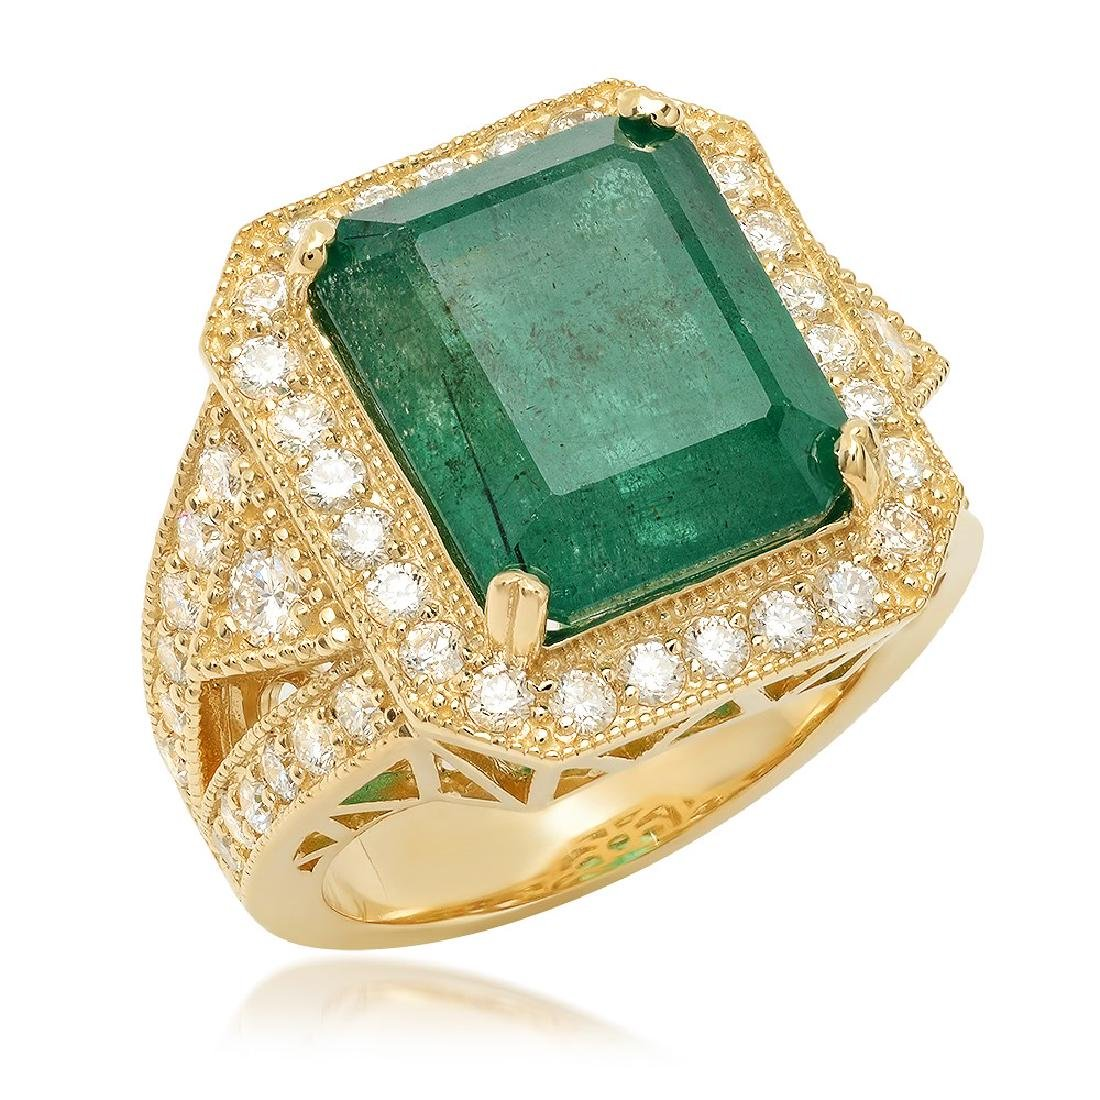 14K Yellow Gold, 8.00cts Emerald, 1.60cts Diamond Ring - 3